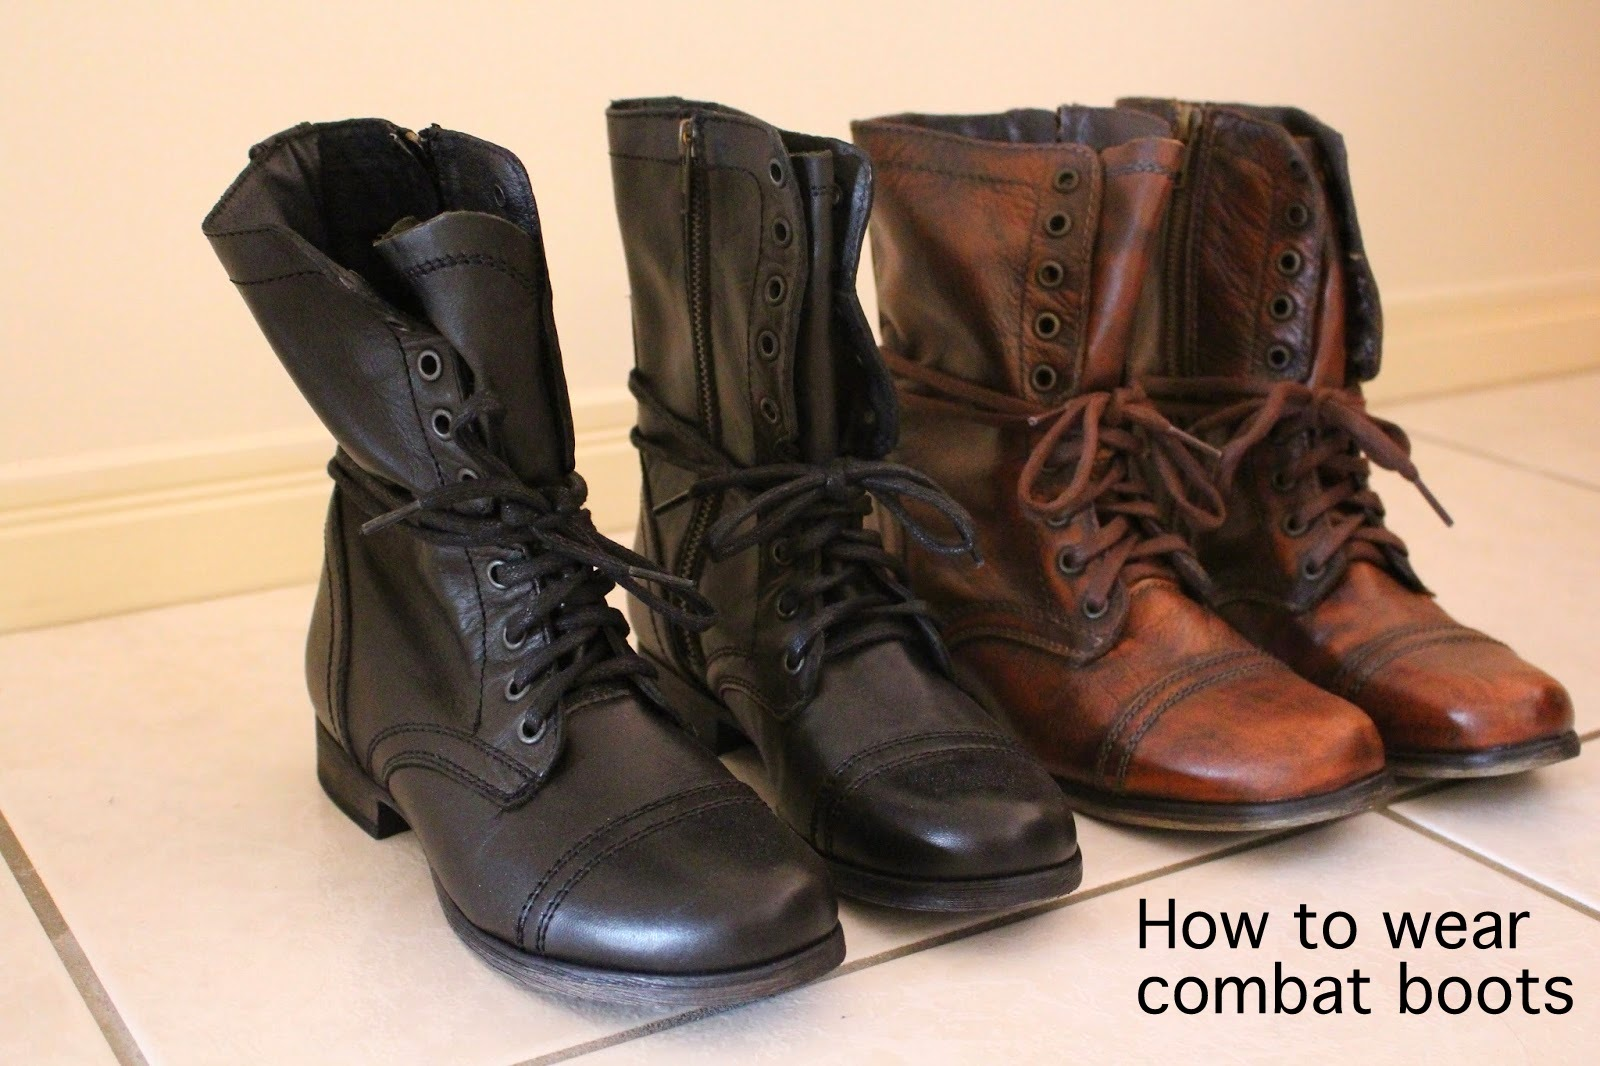 How to wear combat boots with shorts for guys